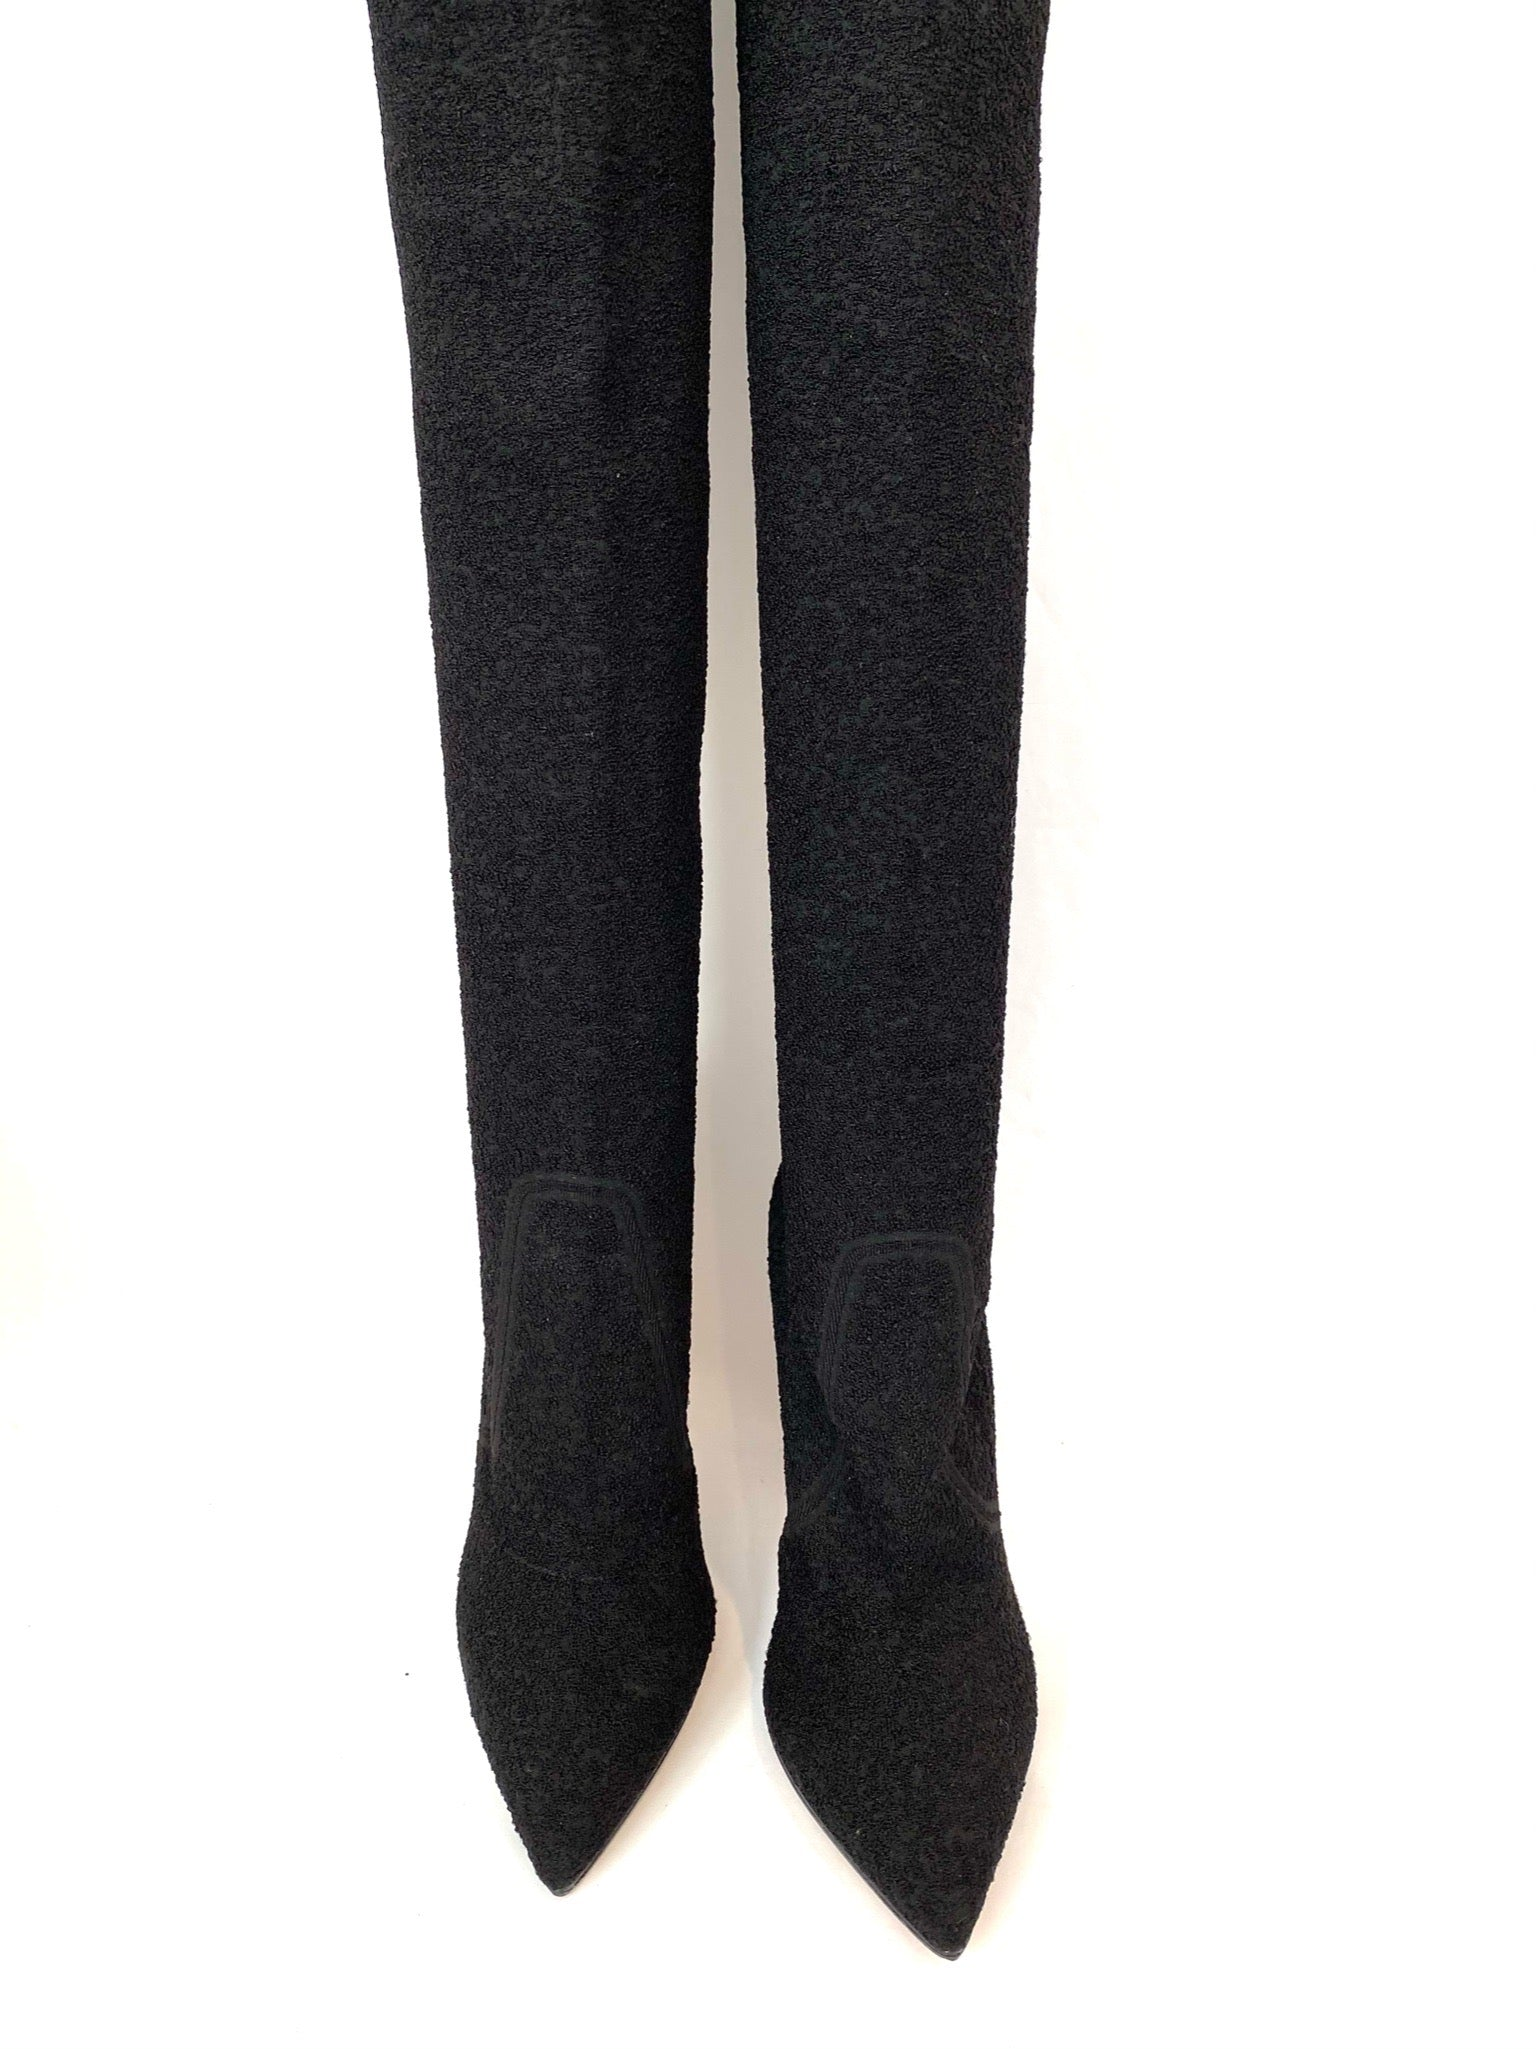 Gianvito Rossi Sweater Knee High Boots Size 37.5